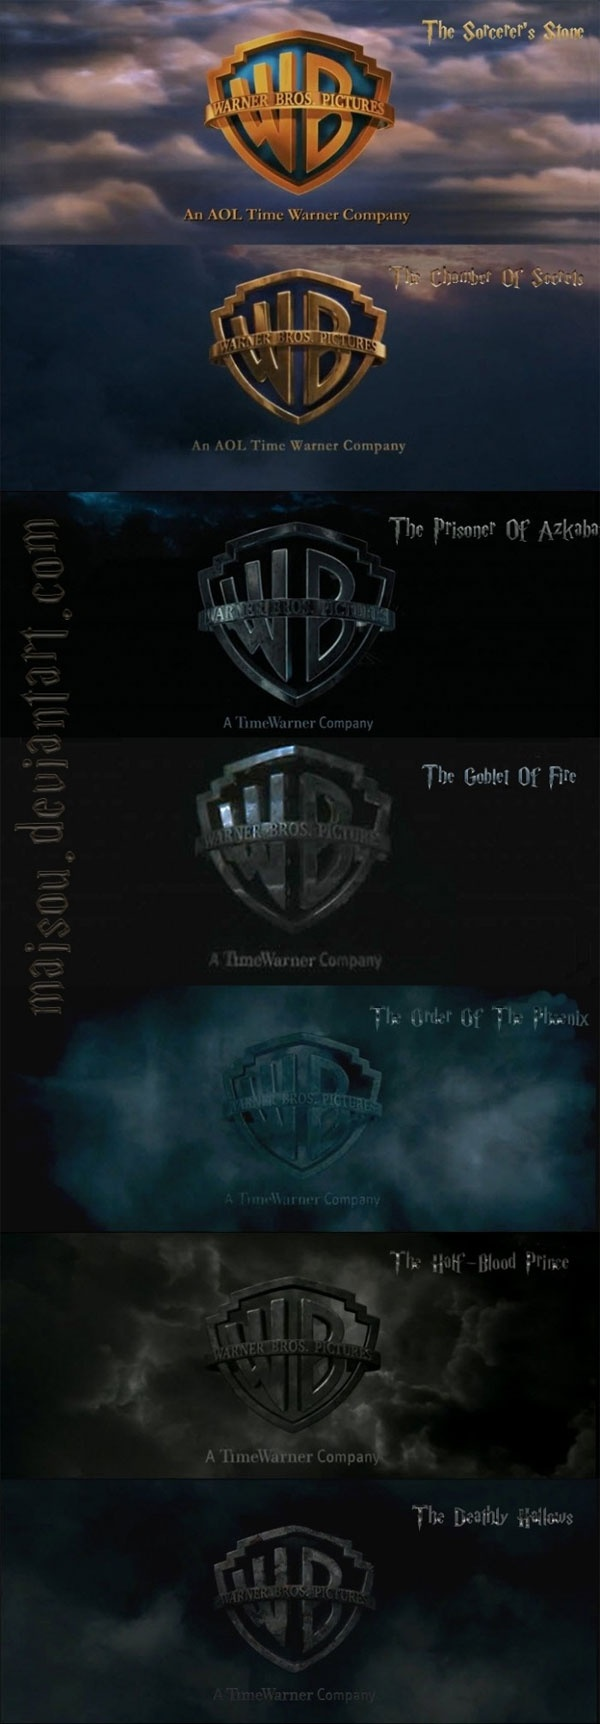 Evolution of harry potter movies